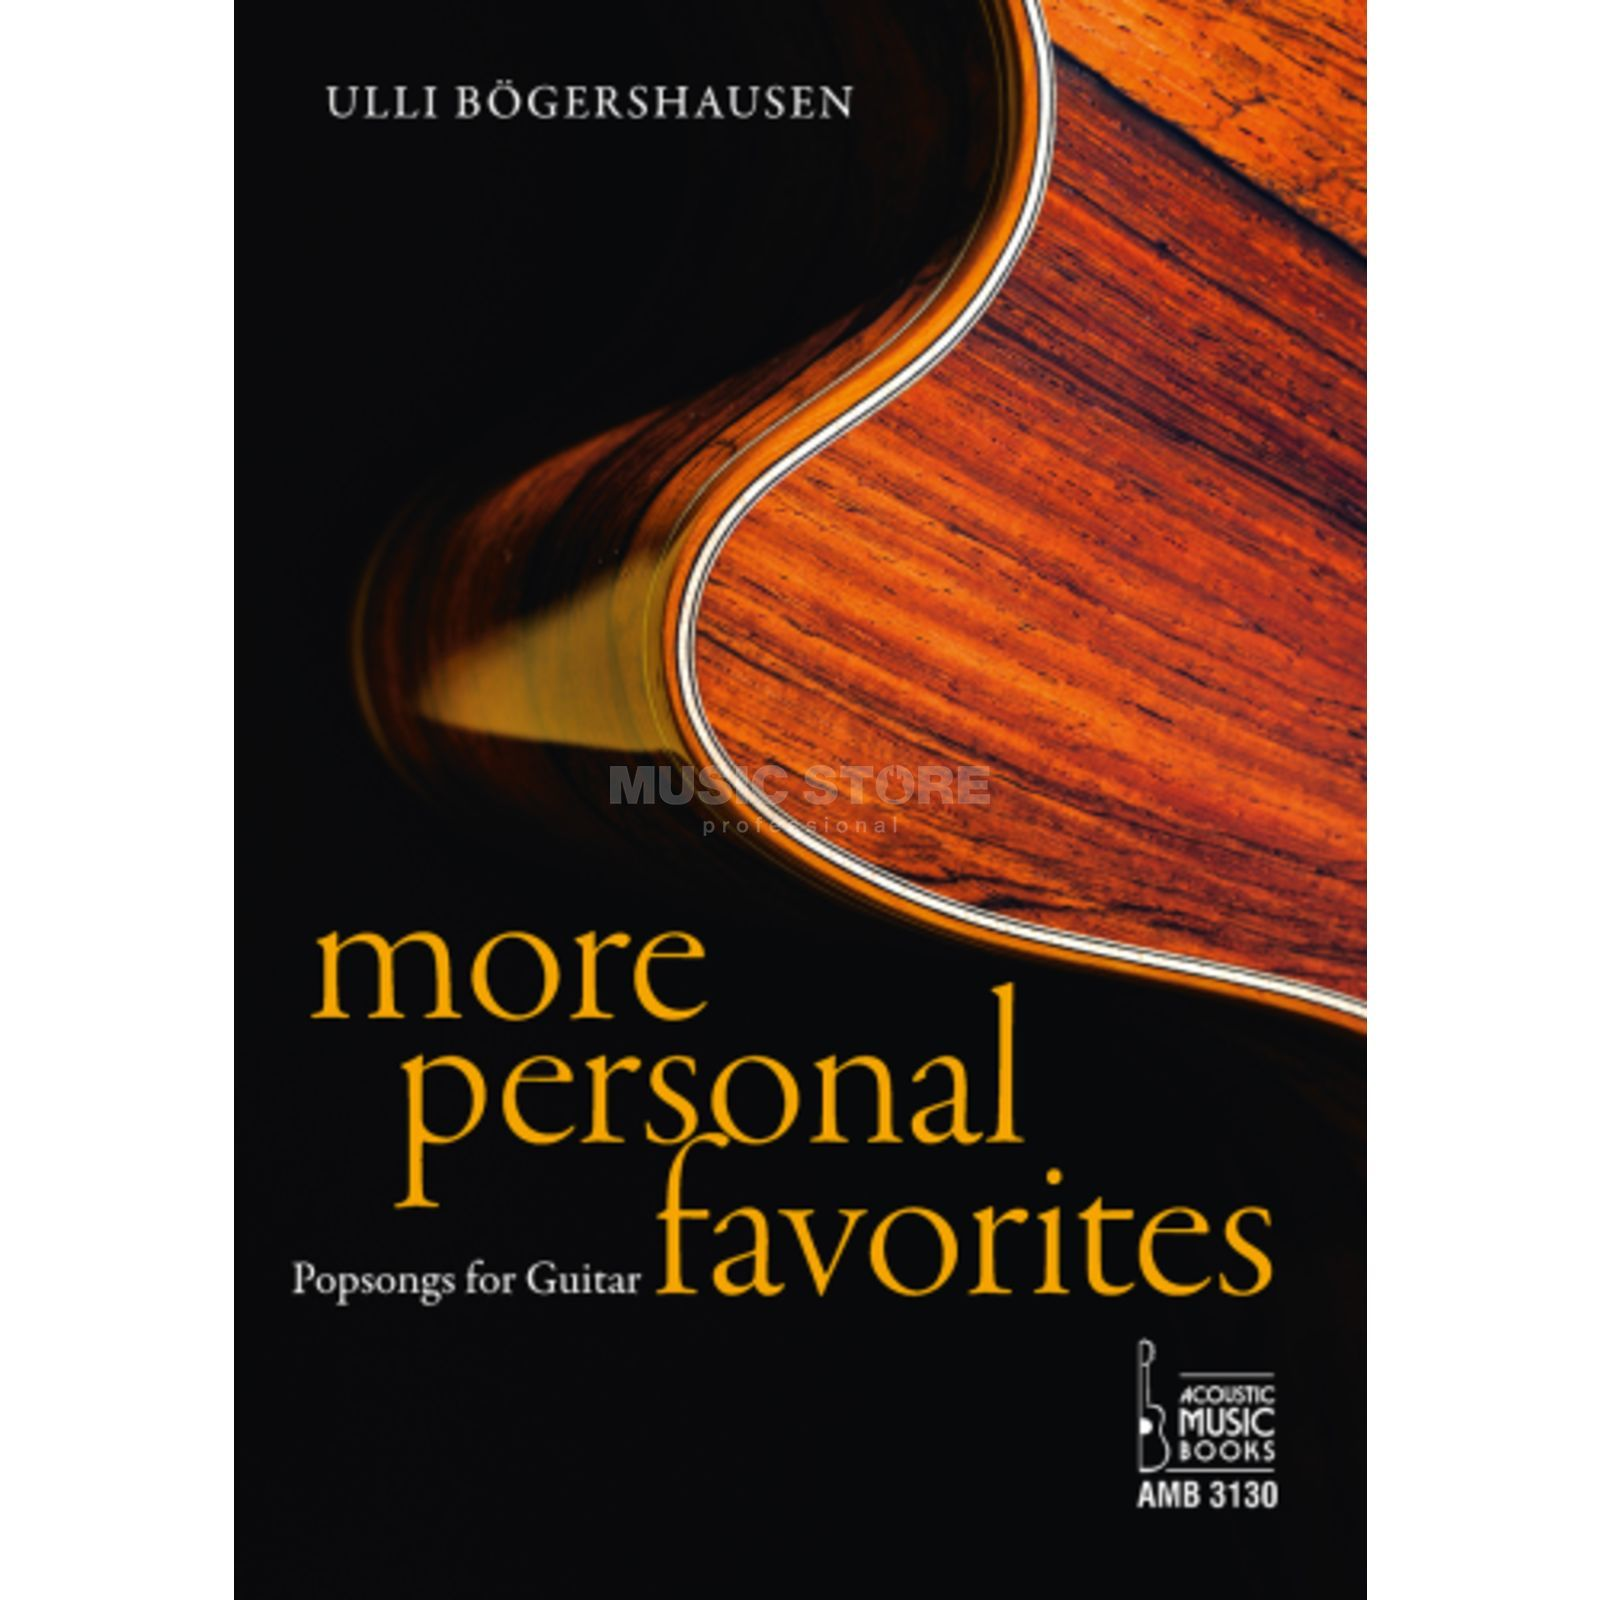 Acoustic Music Books More Personal Favorites Ulli Bögershausen TAB Produktbild